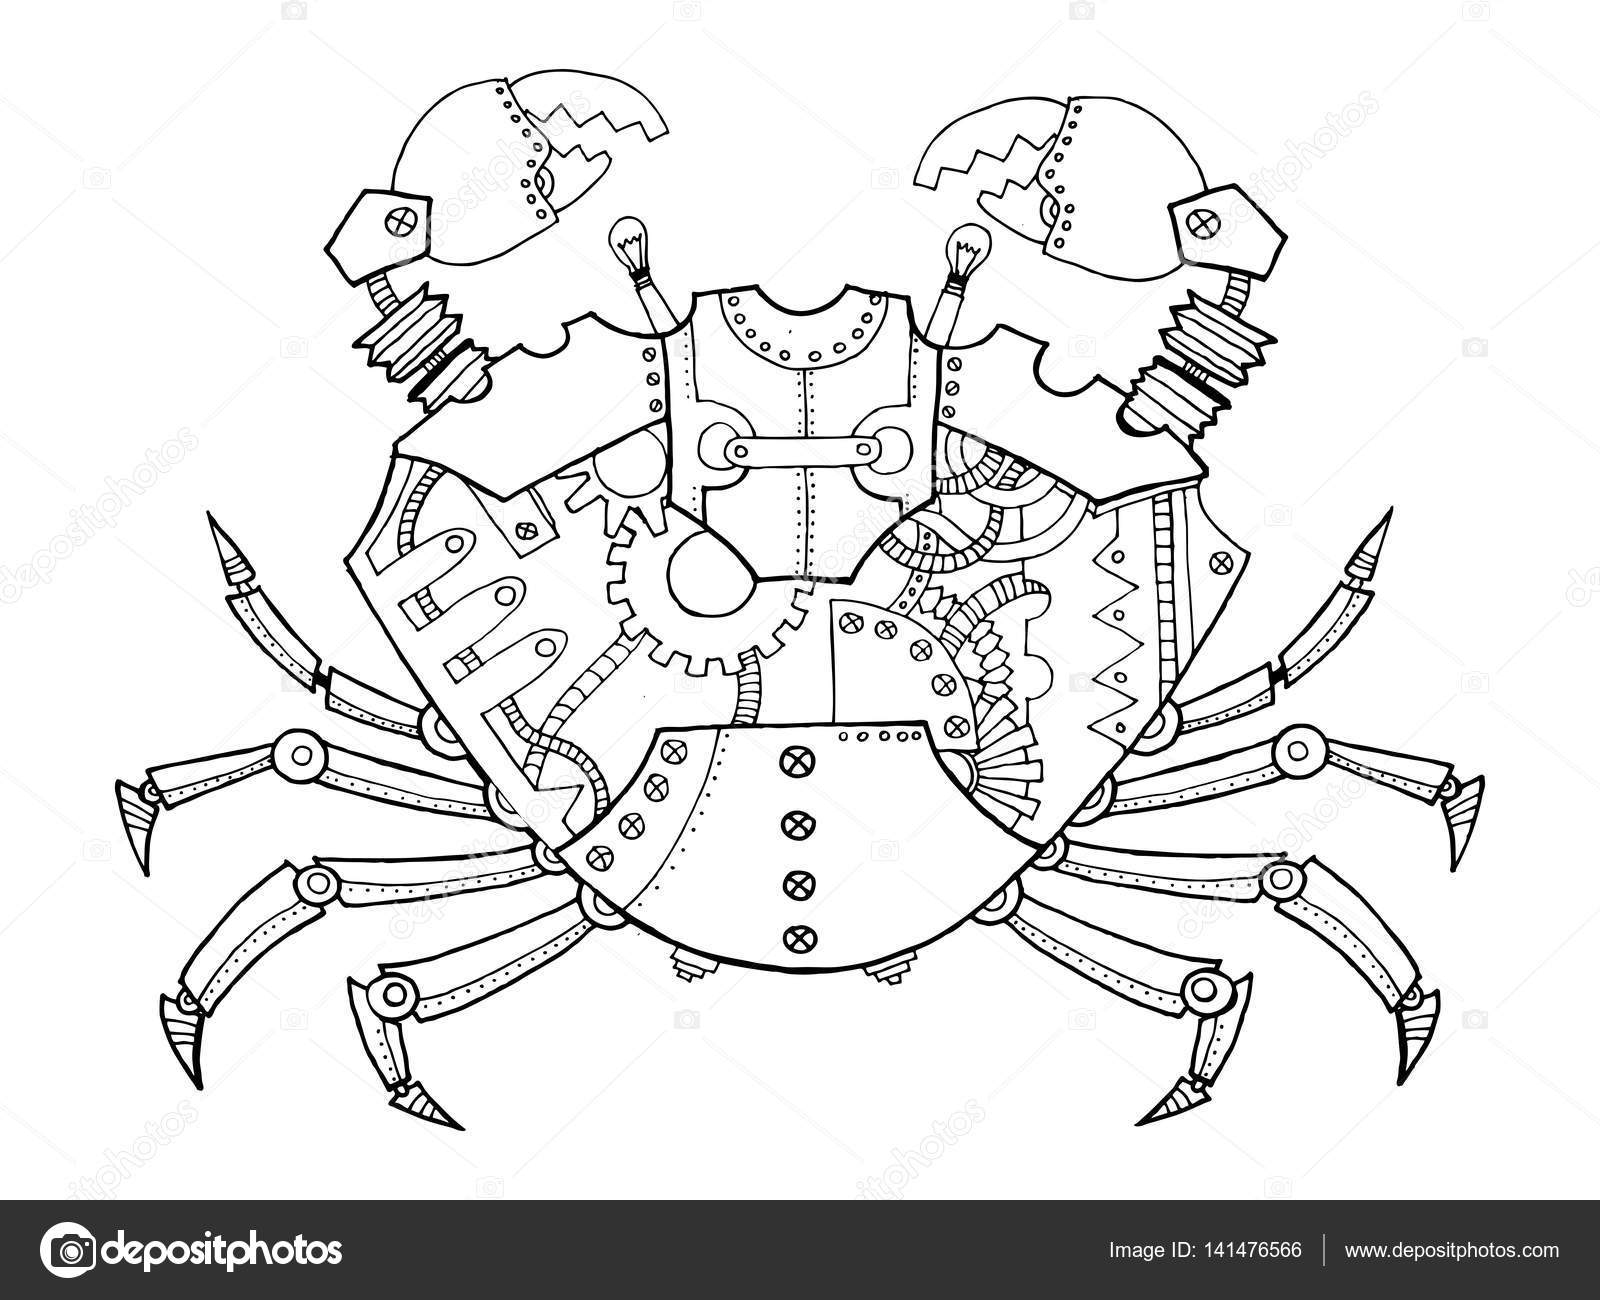 ste unk style crab coloring book vector stock vector  ste unk style crab coloring book vector stock vector